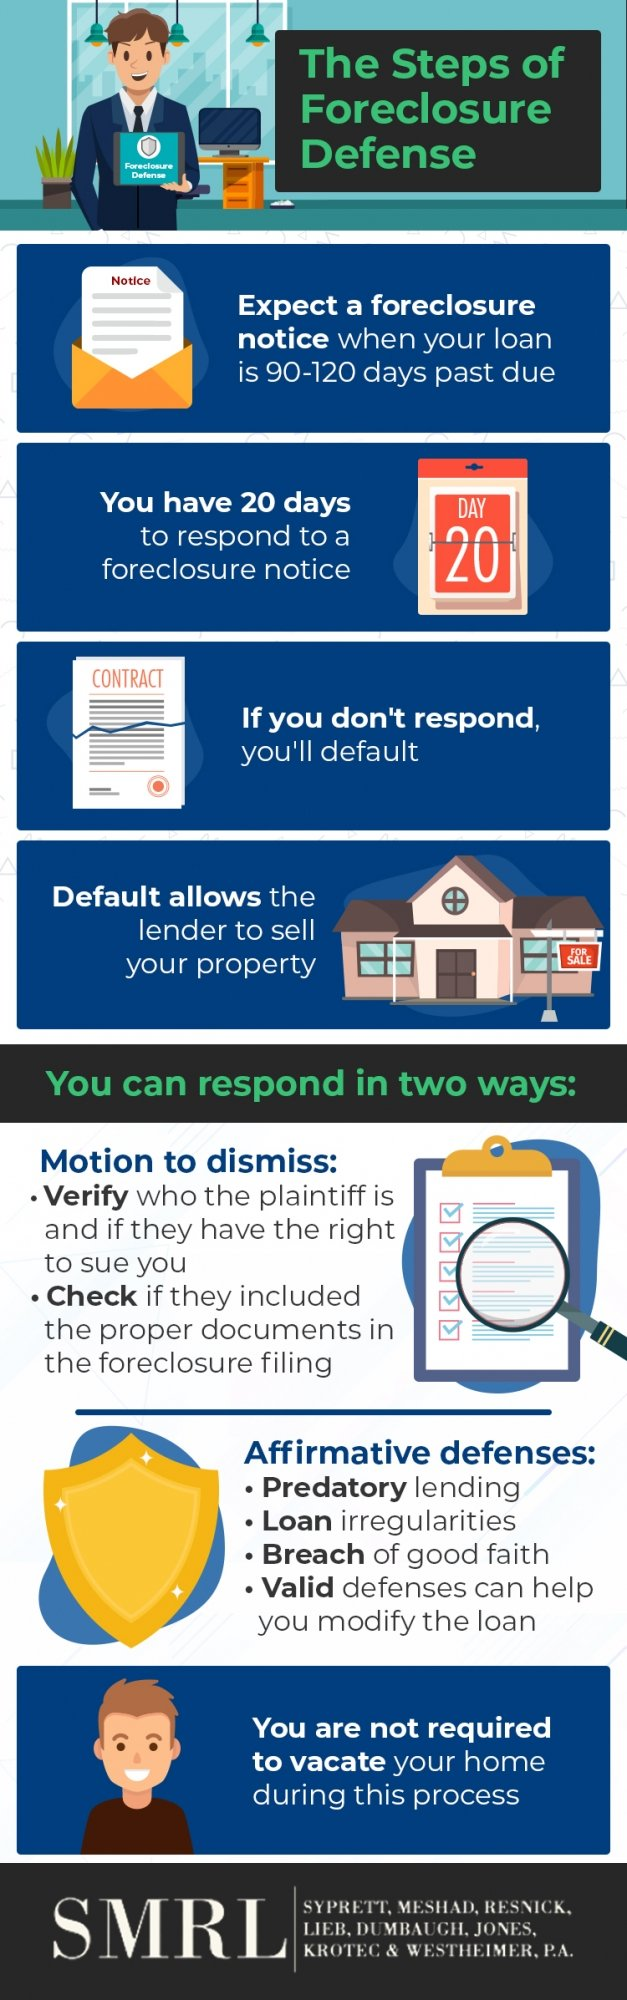 The Steps of Foreclosure Defense steps of forclosure defense infographic